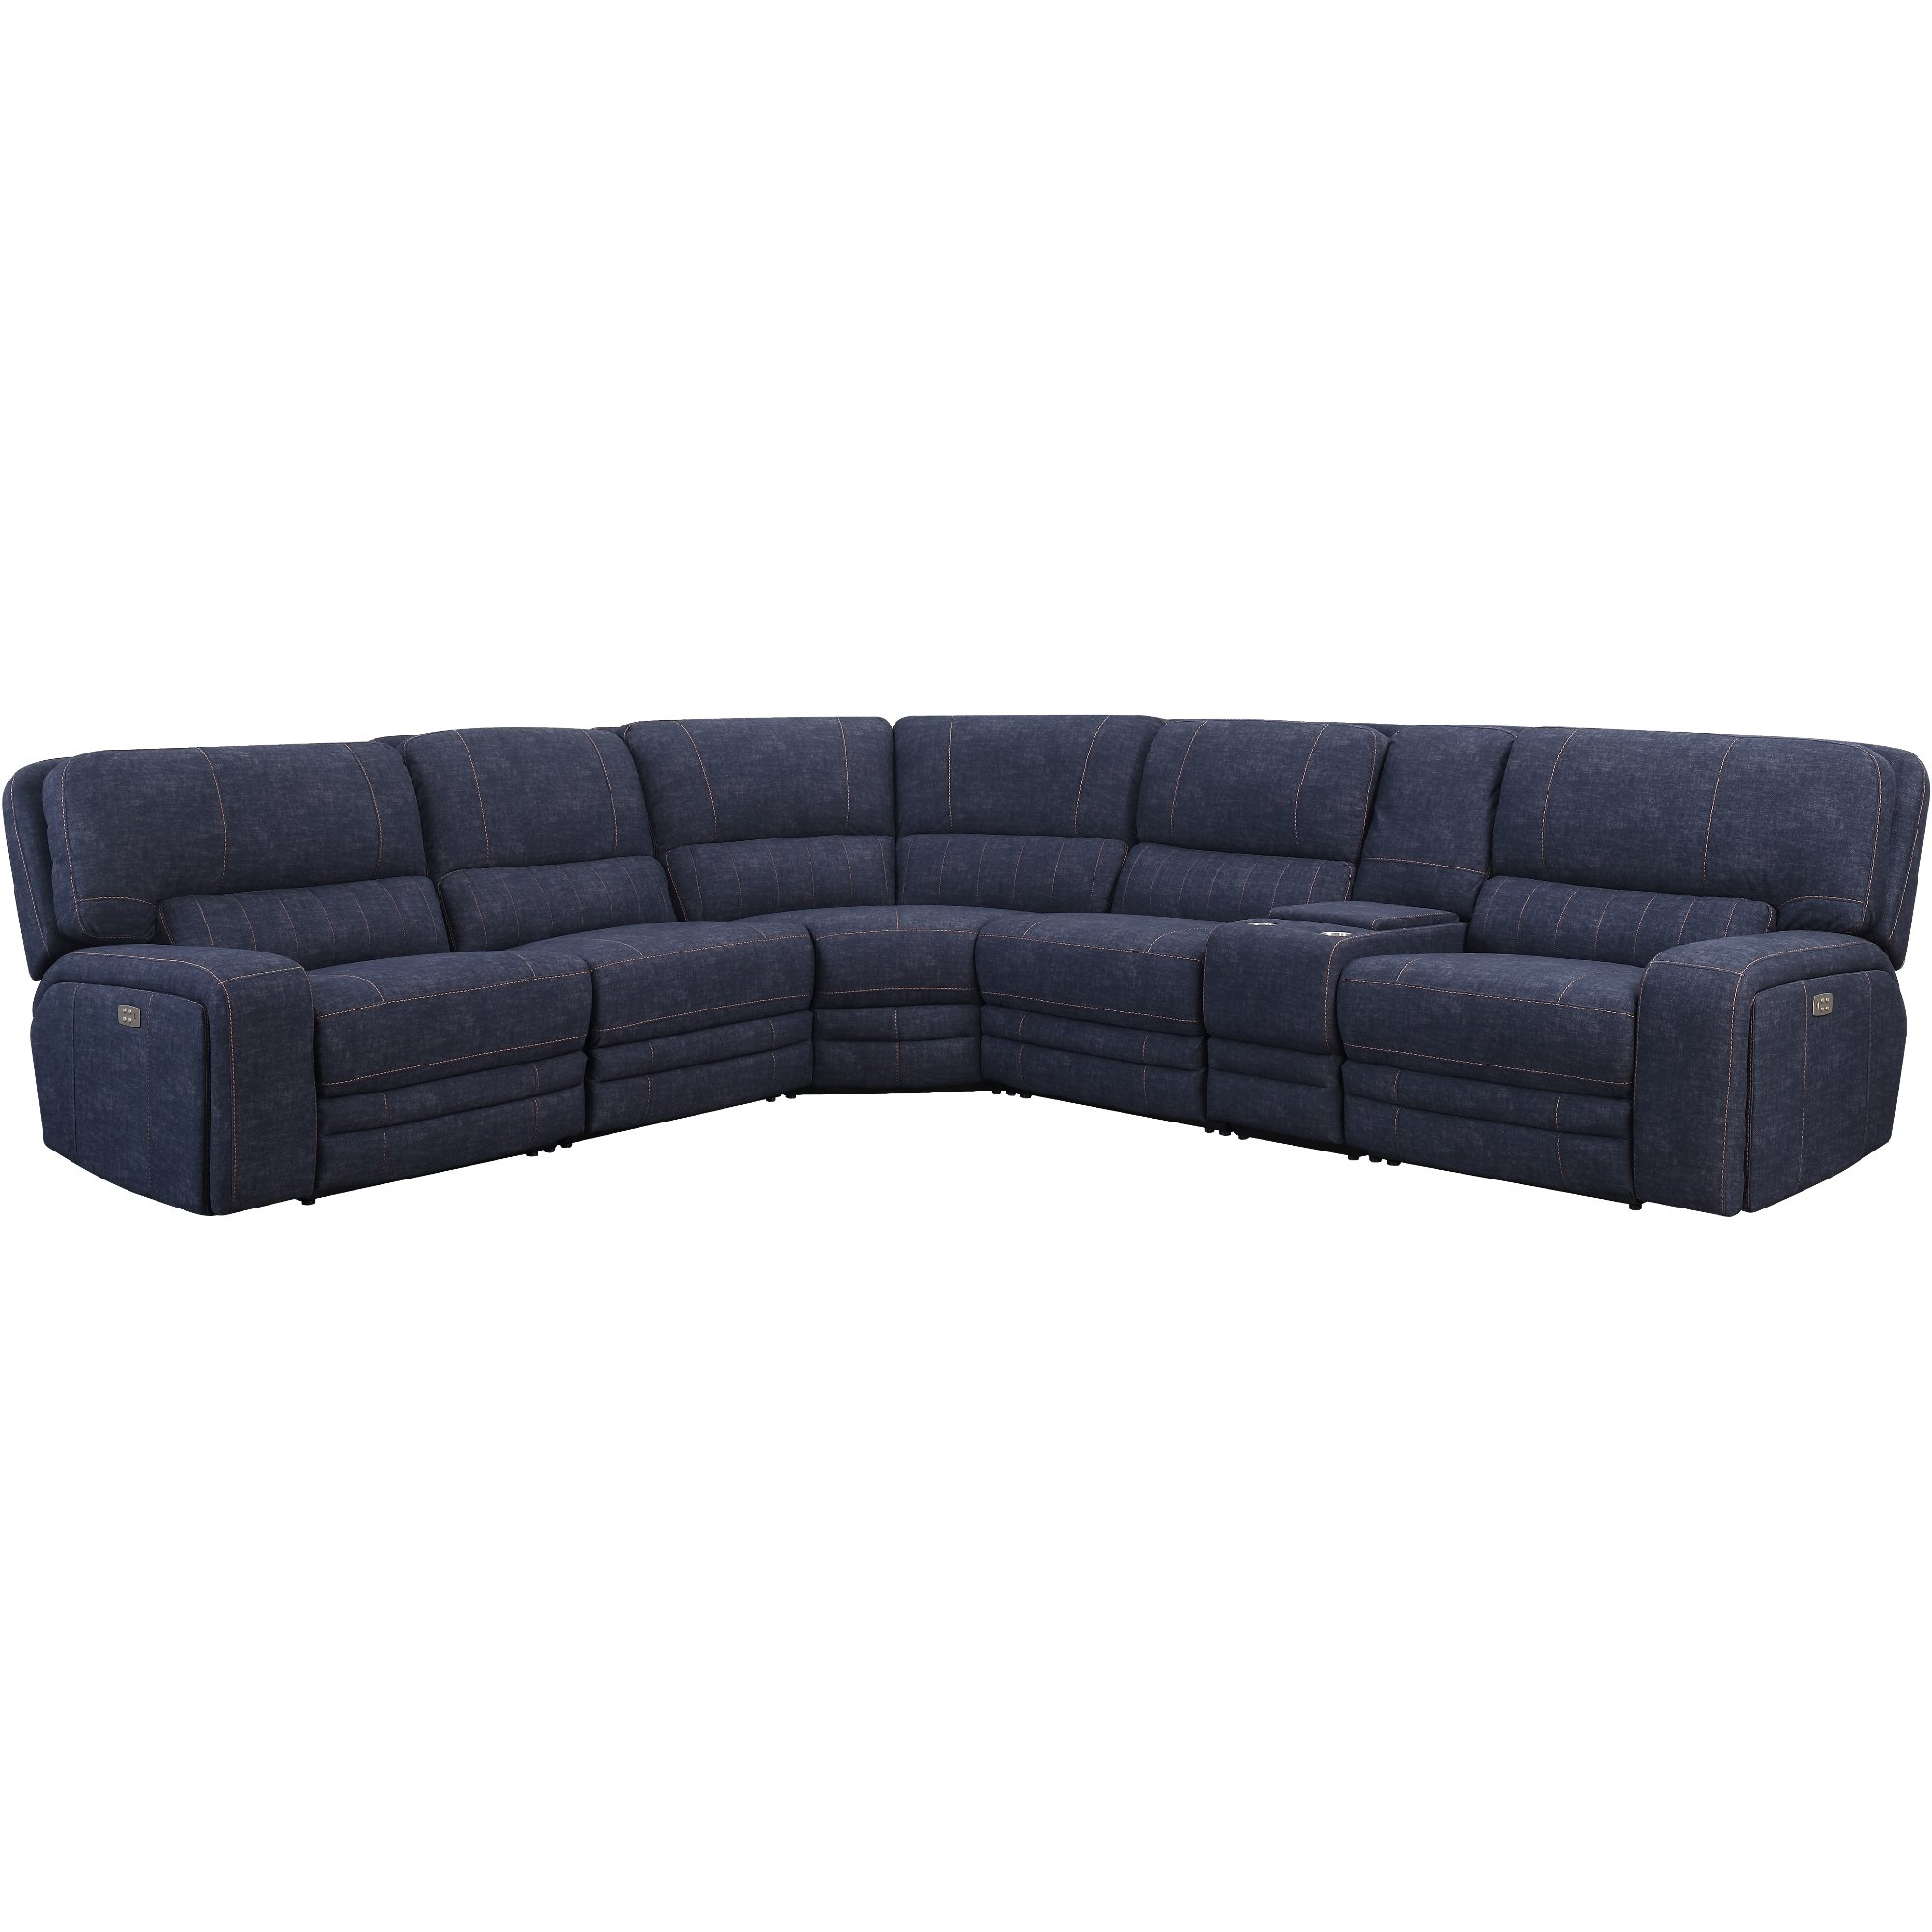 Indigo Blue 6 Piece Reclining Sectional Sofa - Rock Quarry | RC ...